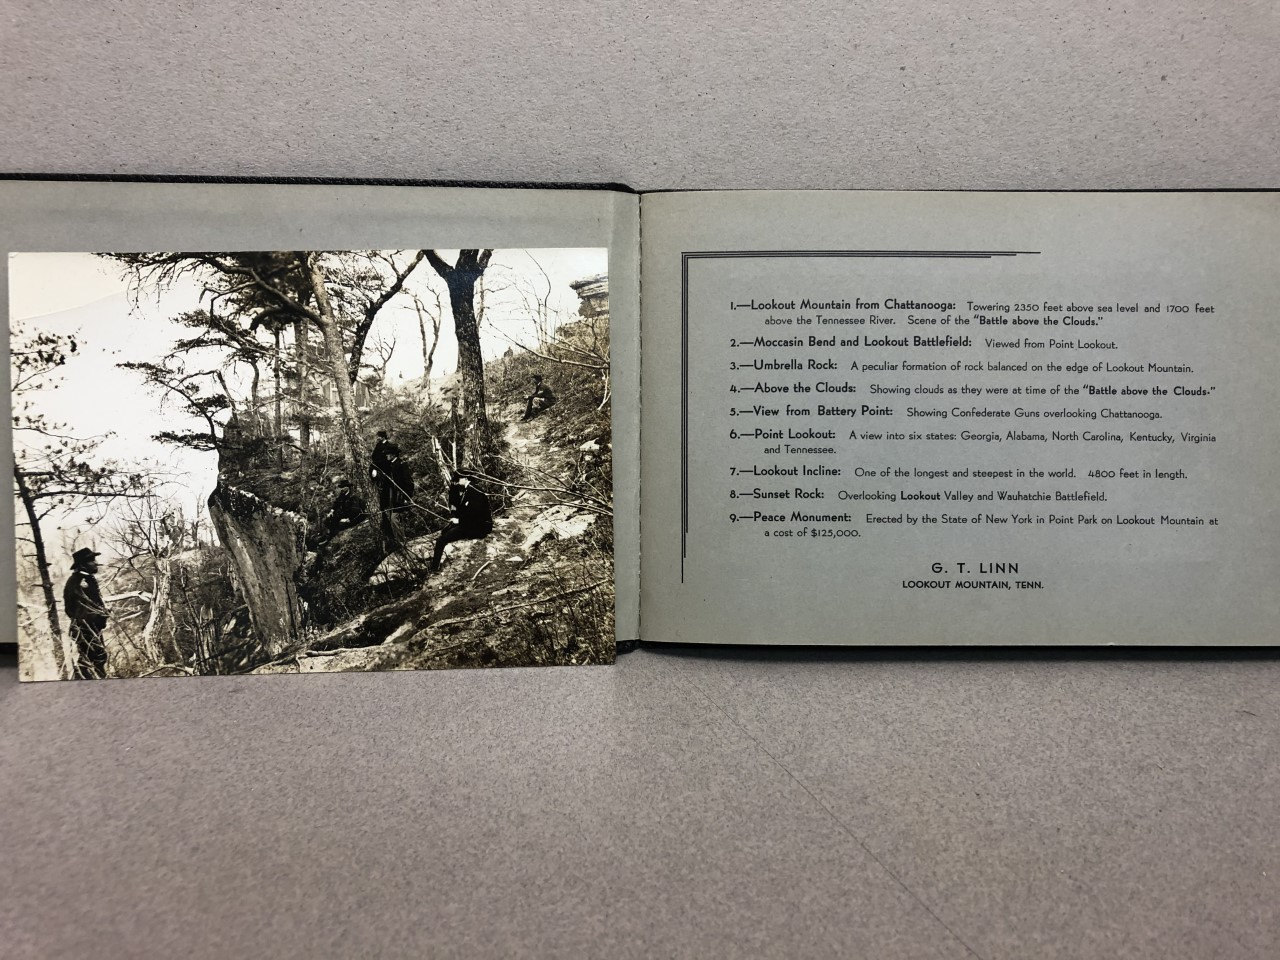 Image for PHOTOGRAPHS OF LOOKOUT MOUNTAIN